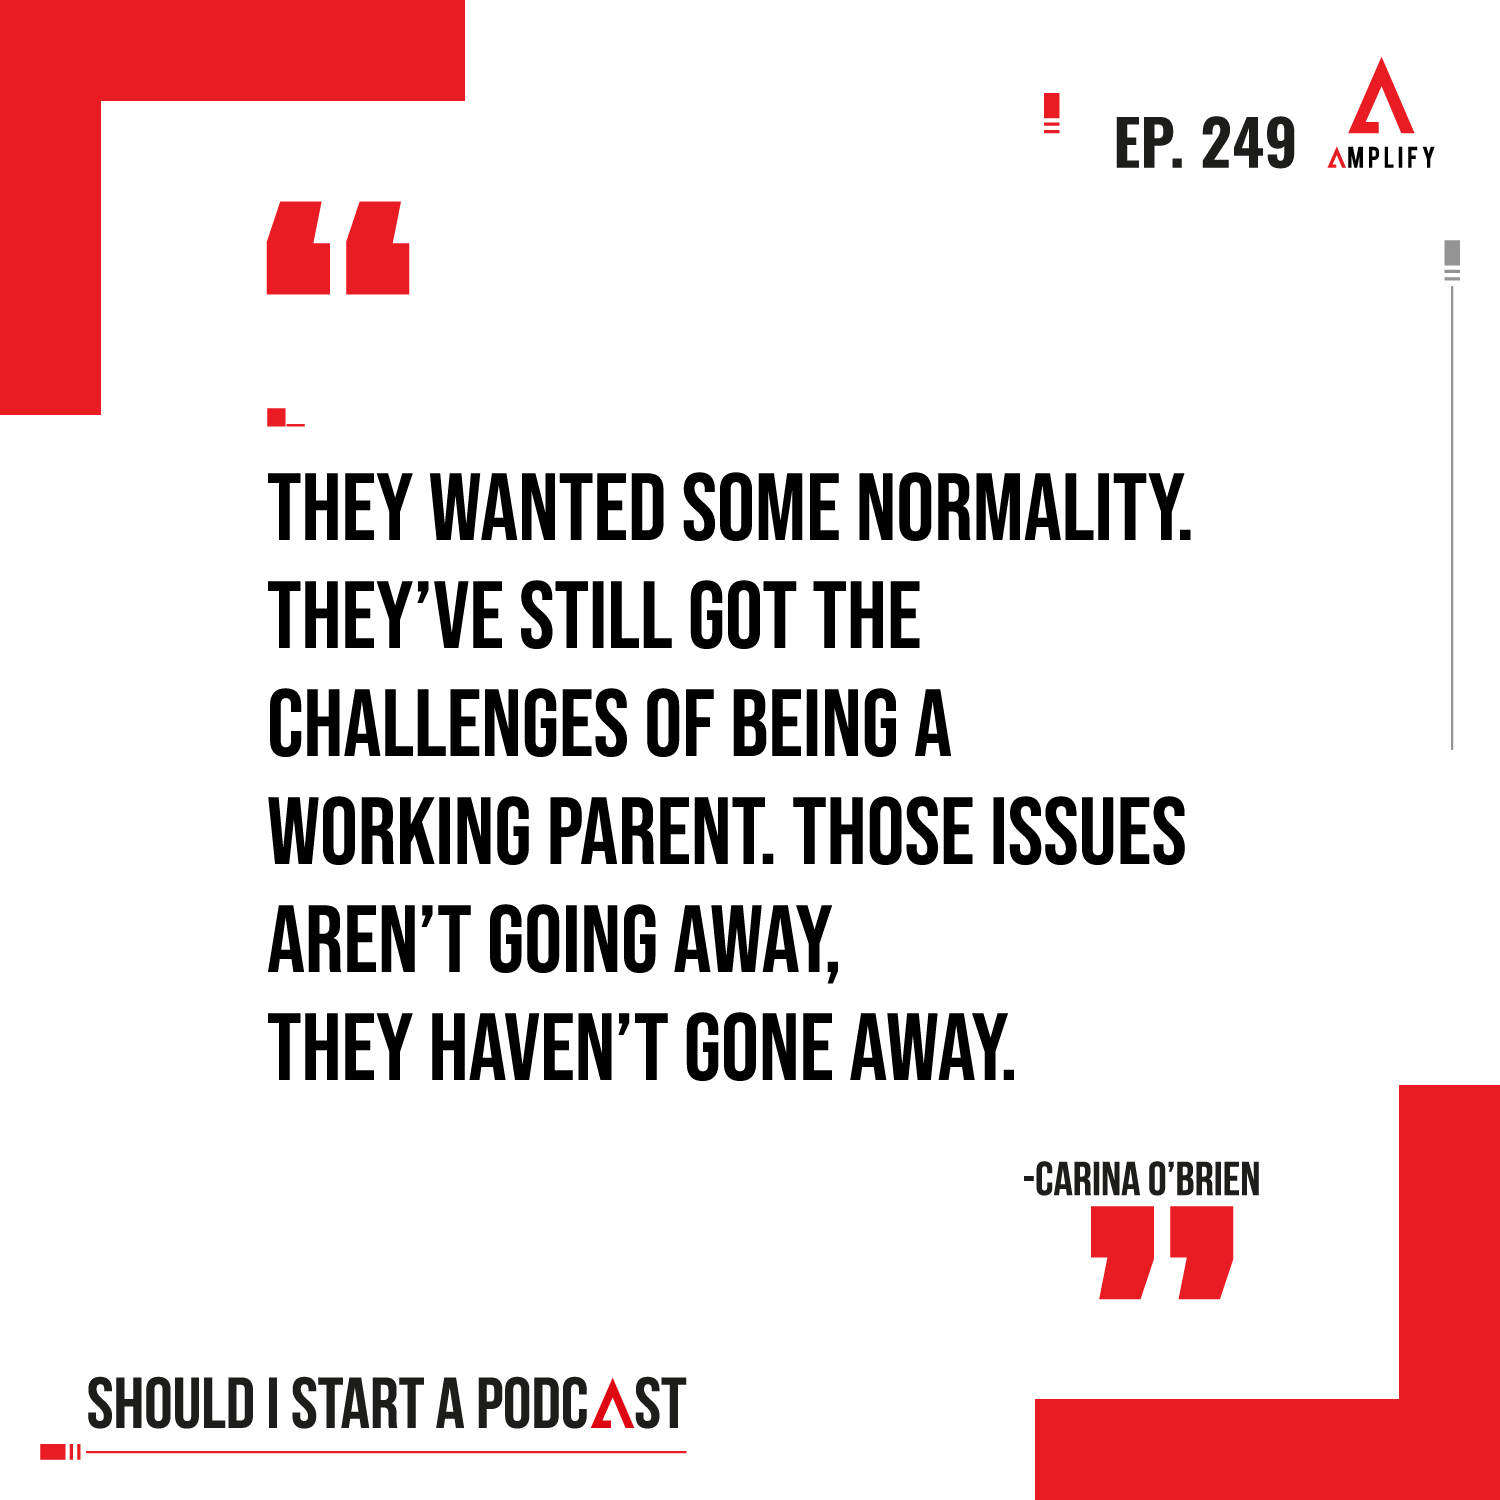 Quote: They wanted some normality. They've still got the challenges of being a working parent. Those issues aren't going away, they haven't gone away.